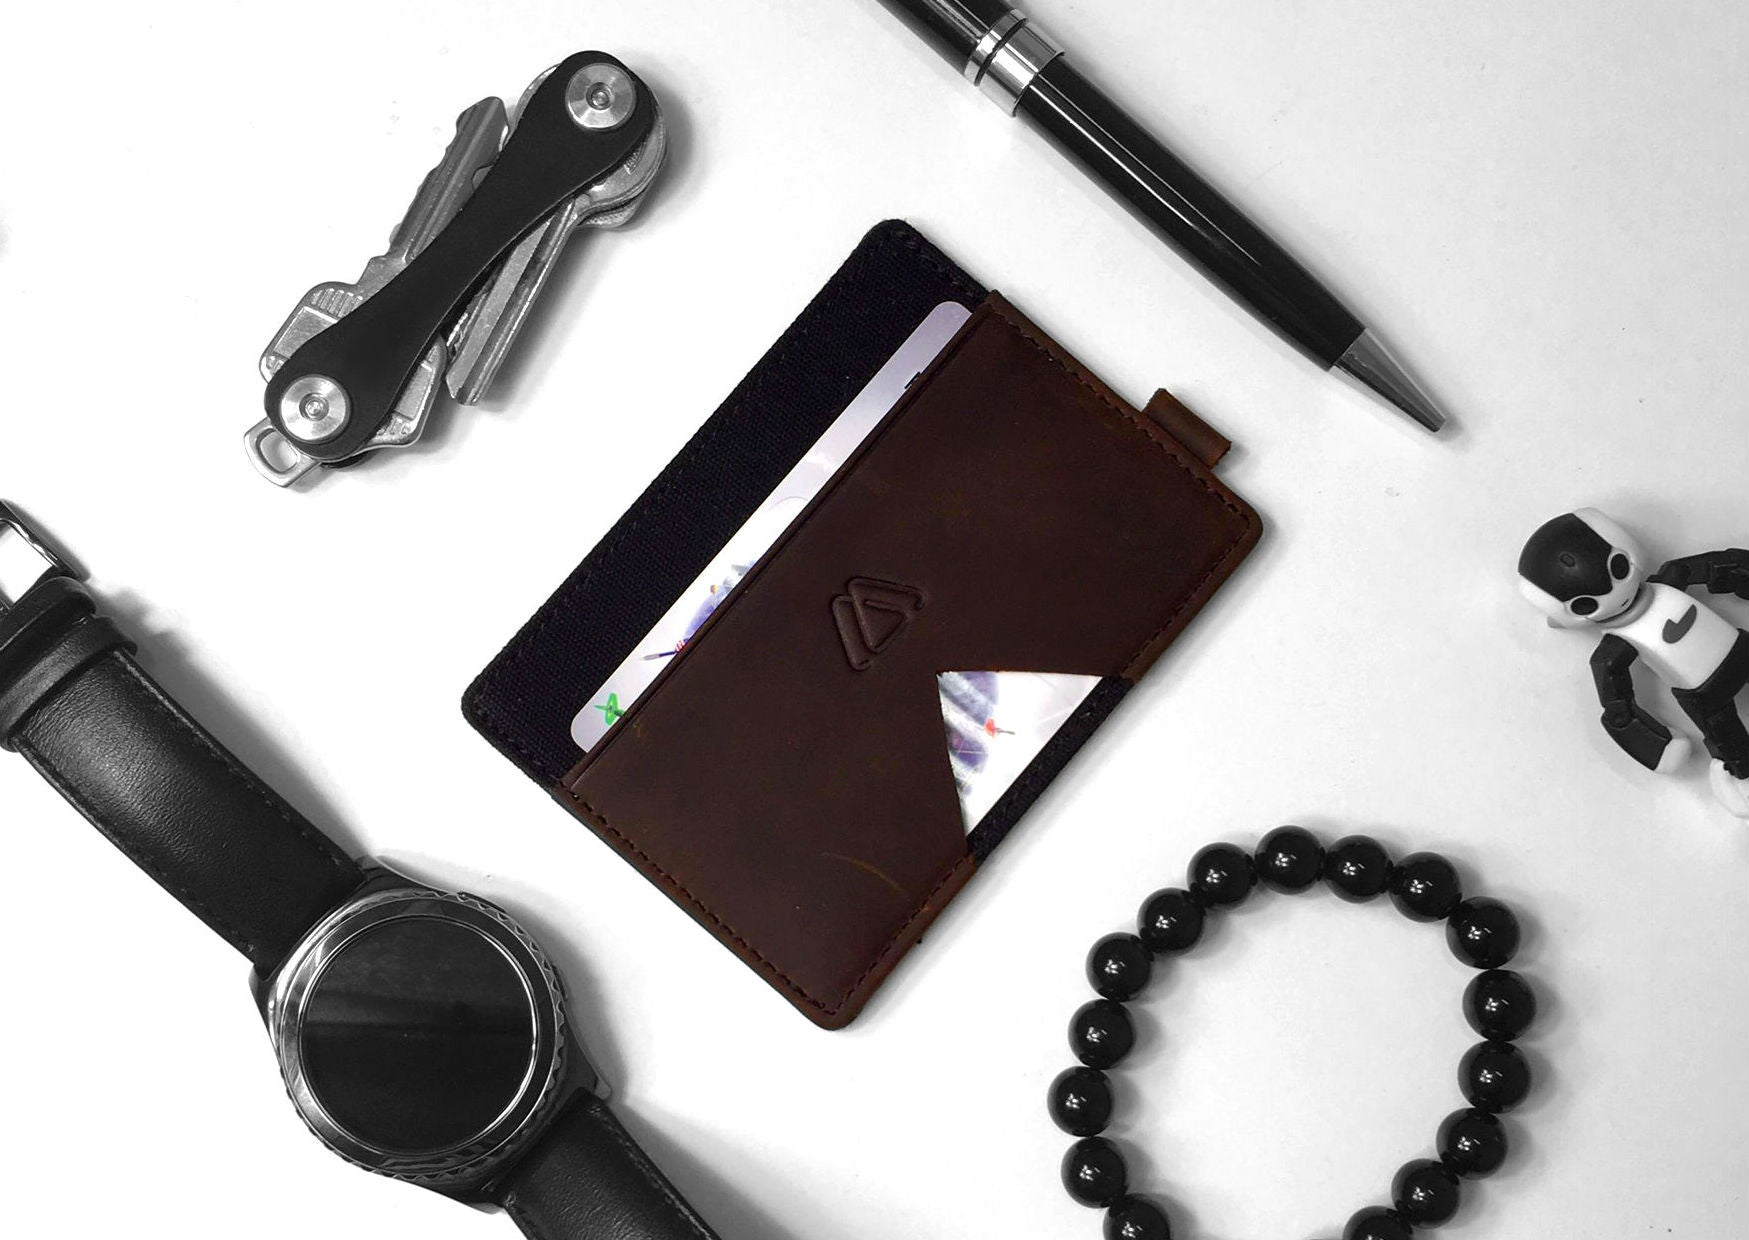 4 Types of wallets commonly used in the 21st century